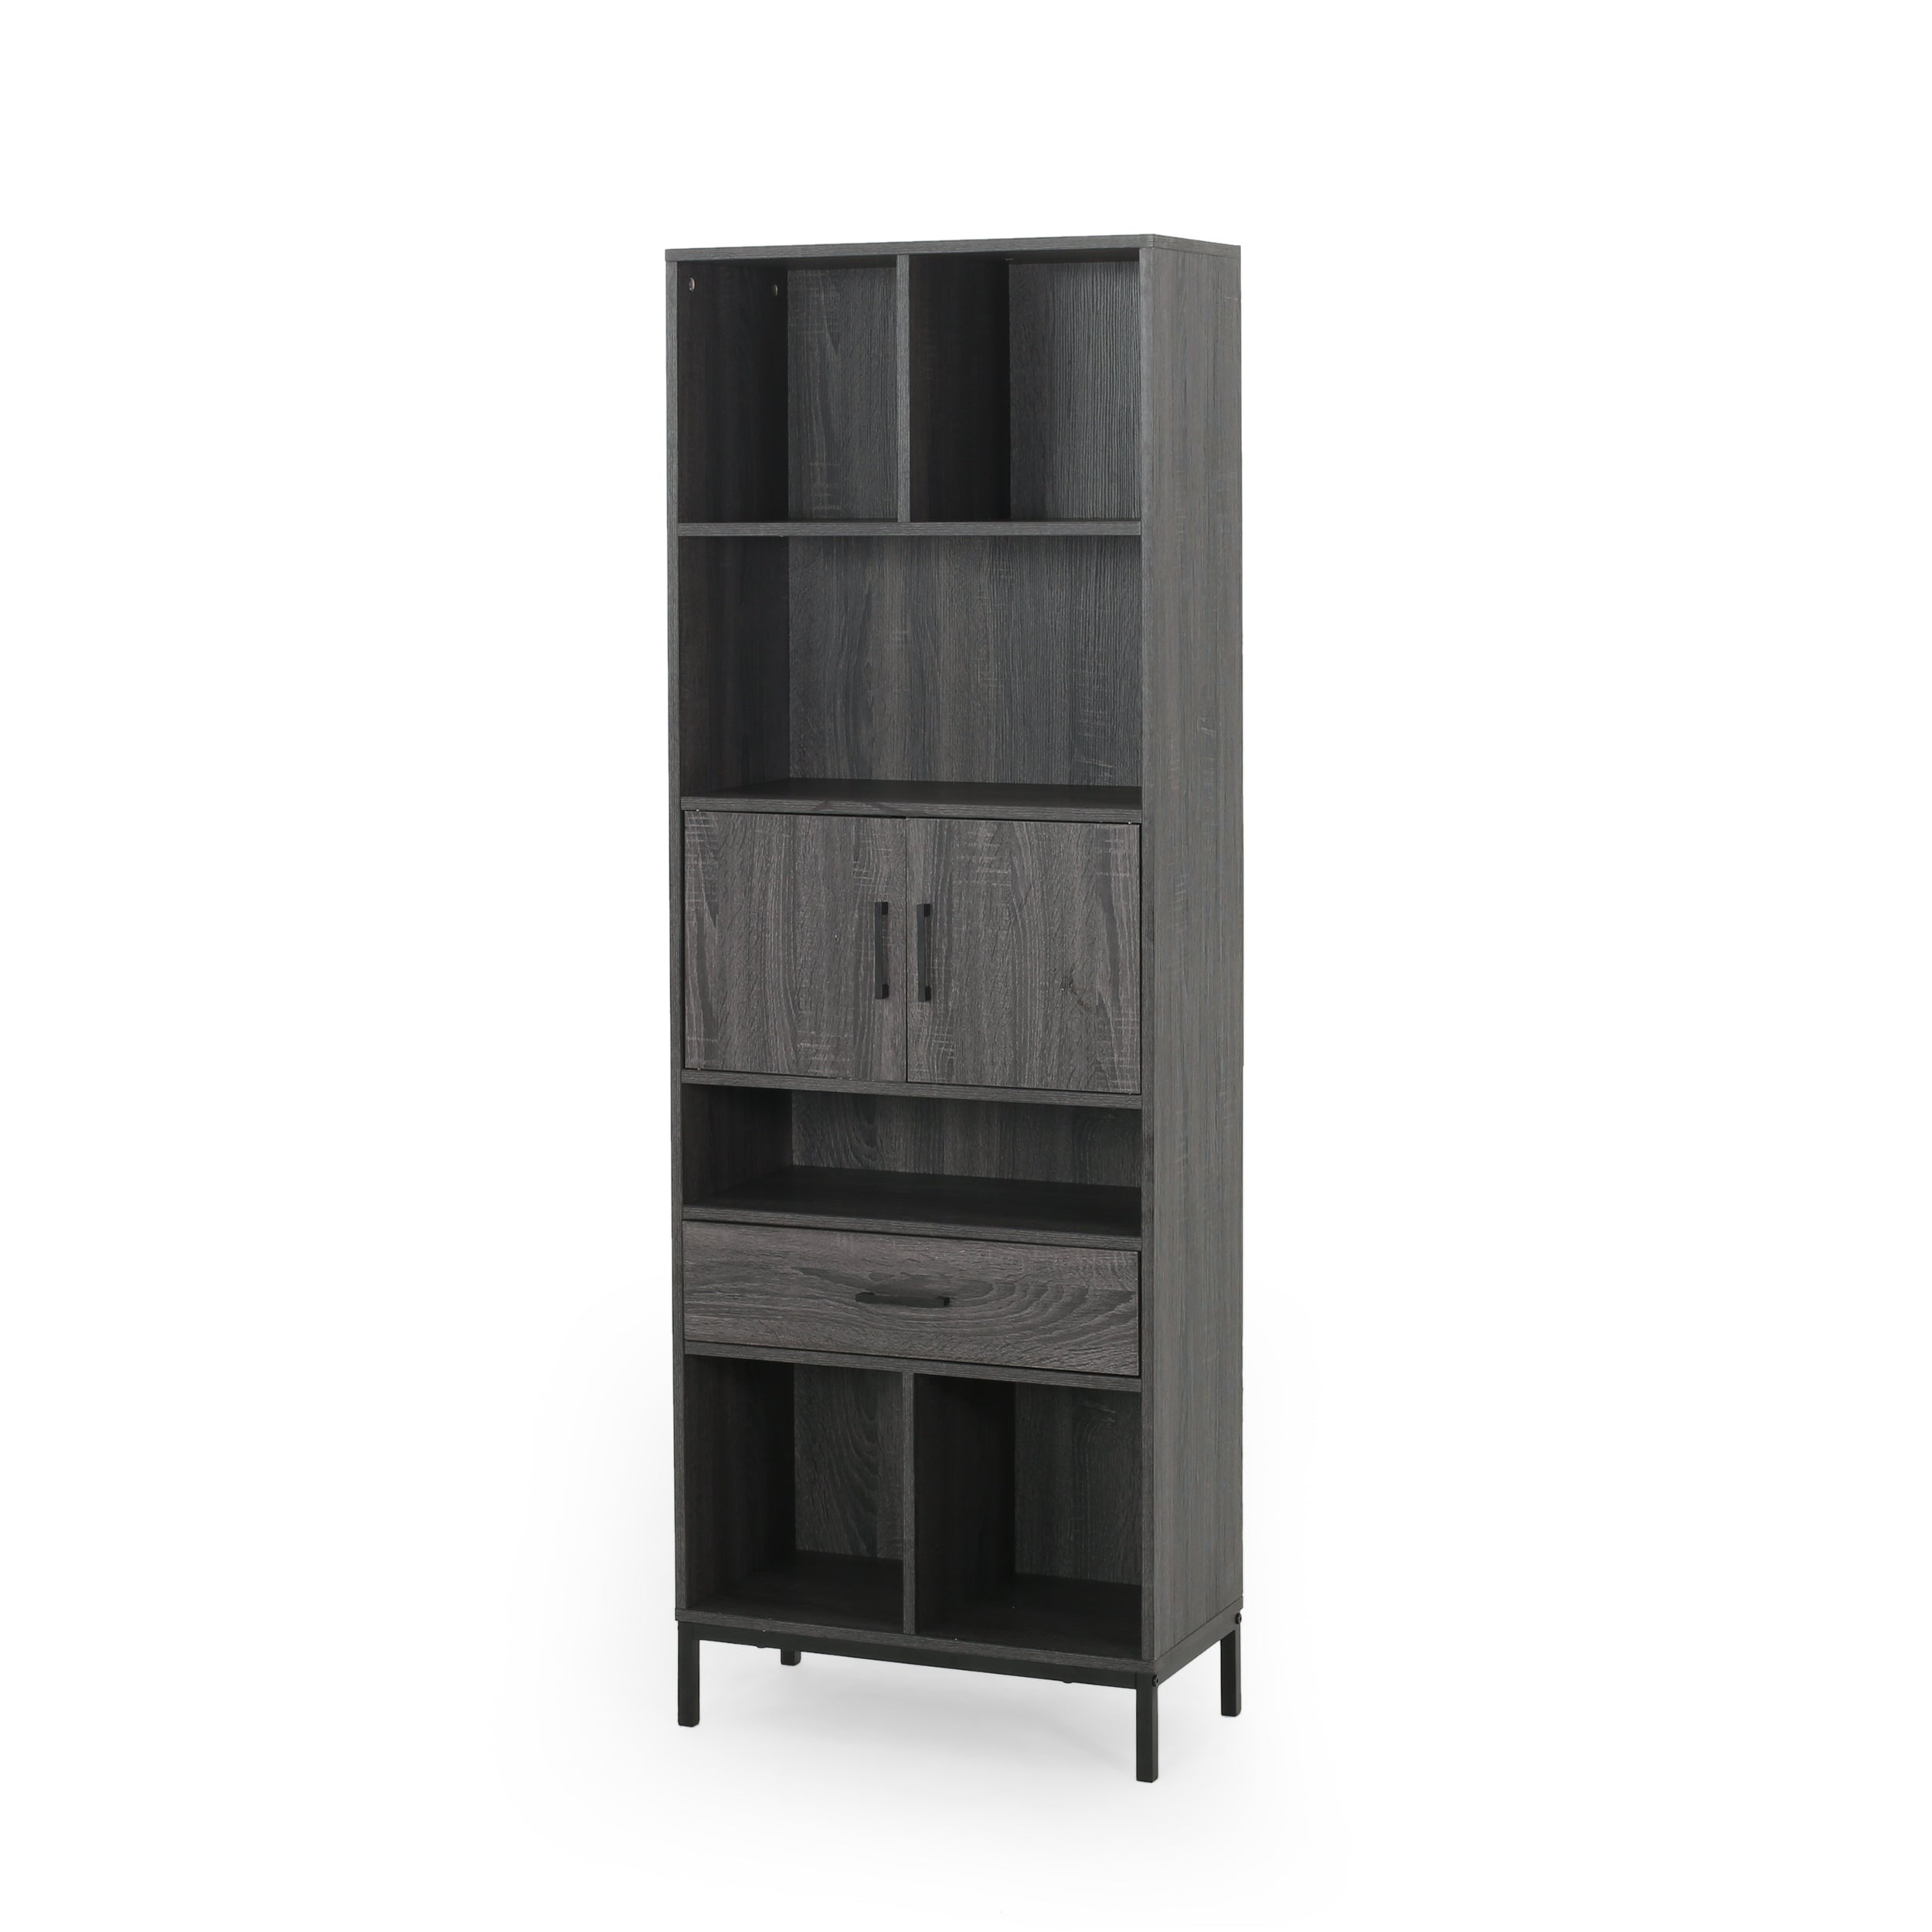 Abriel Bookcase with Storage Cabinet Drawer Walnut